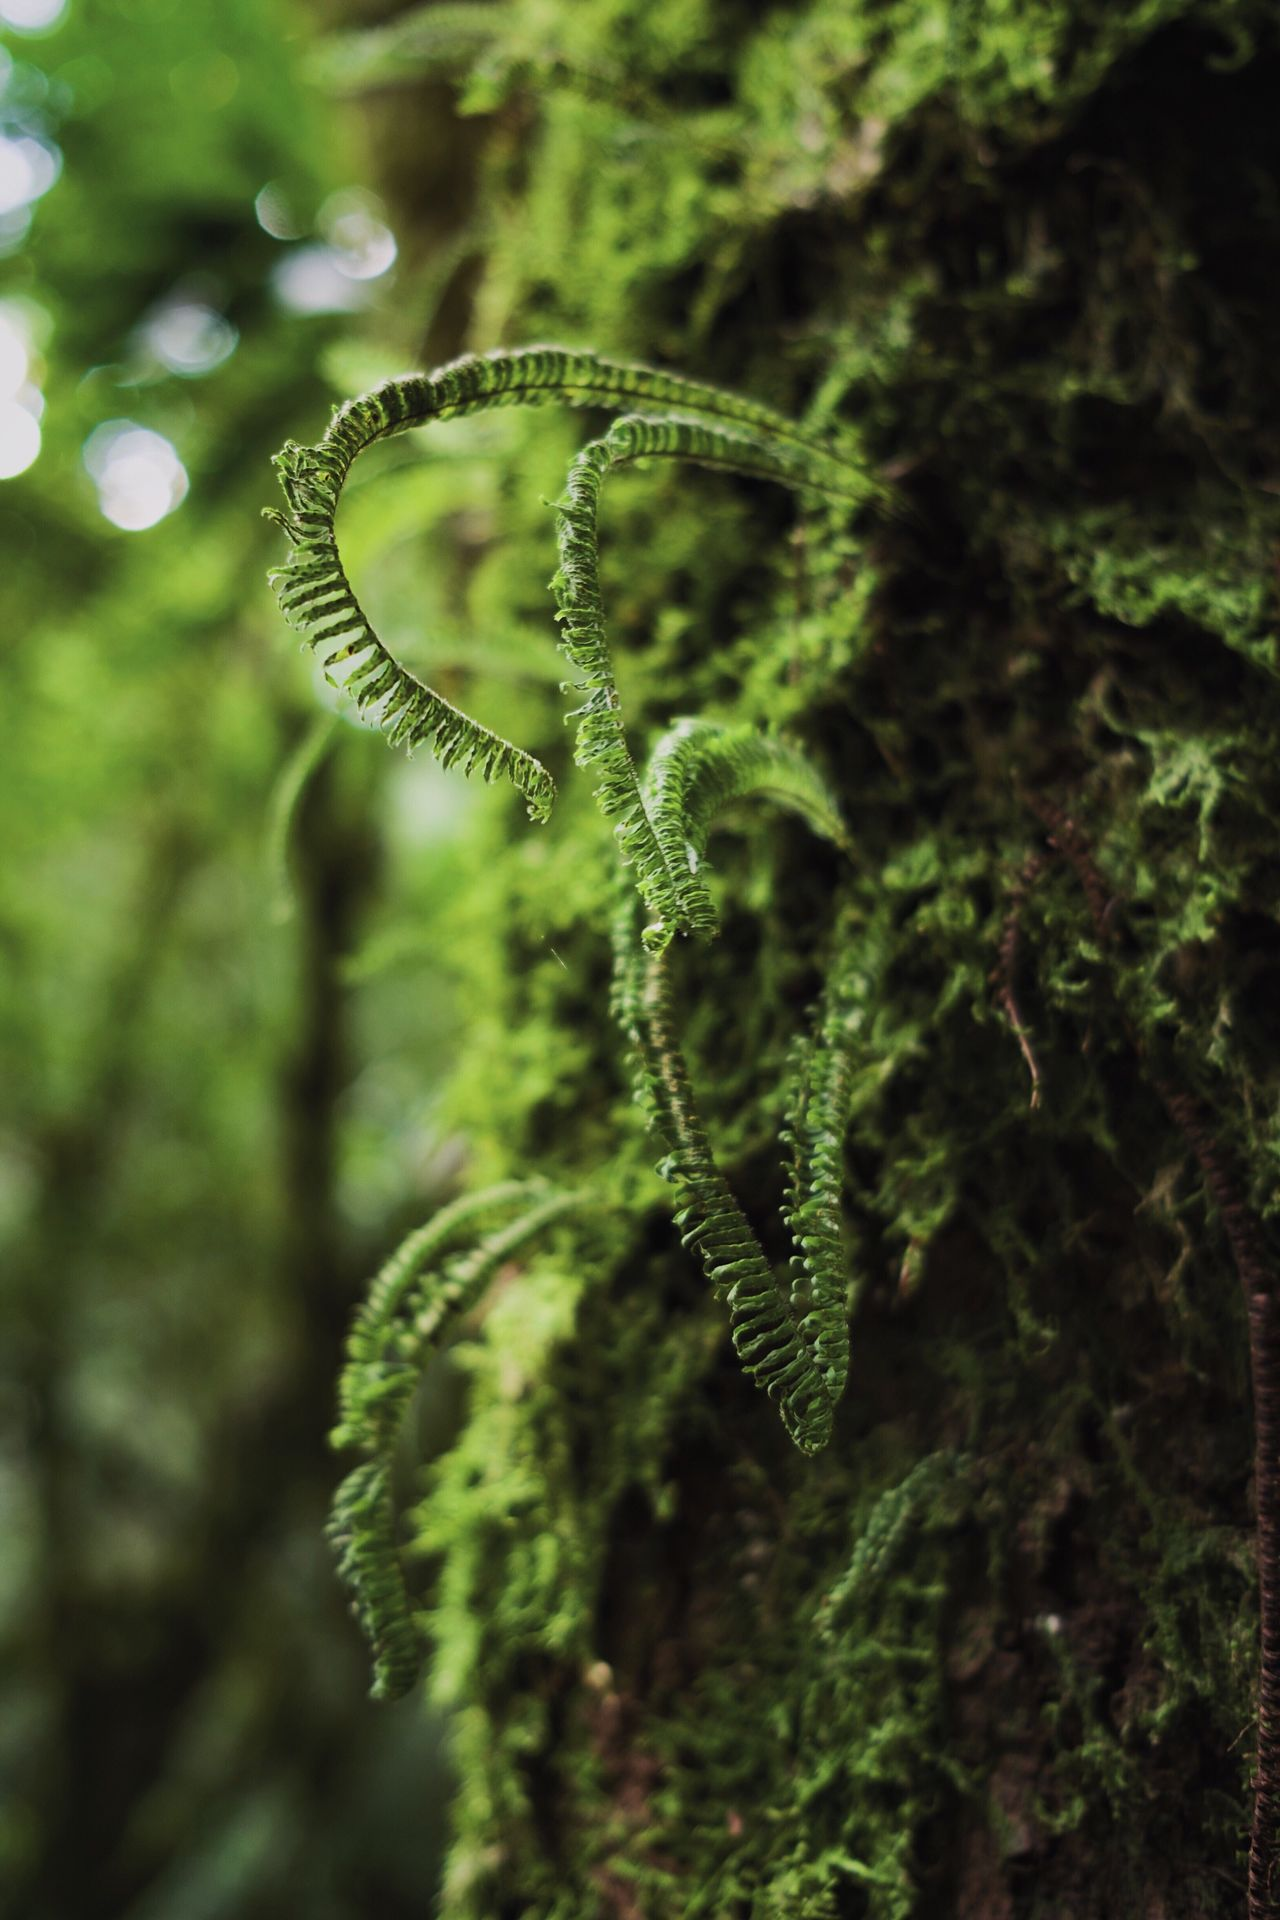 Fern Nature Green Color Focus On Foreground Plant No People Growth Beauty In Nature Outdoors Day Tendril Tree Animal Themes Fragility Close-up